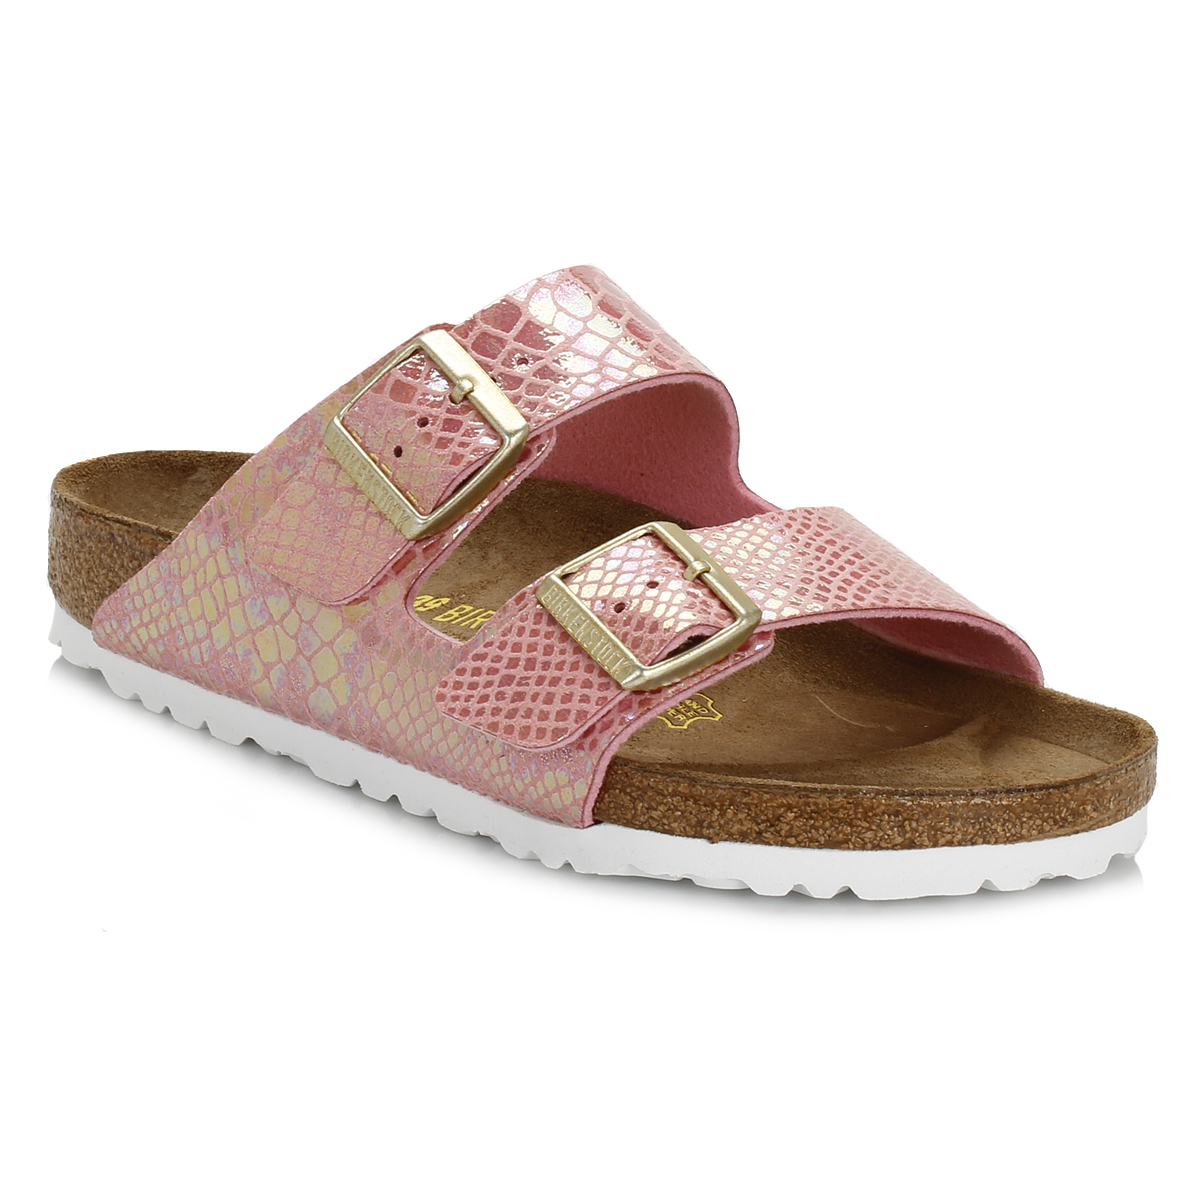 birkenstock womens sandal rose pink birko flor arizona. Black Bedroom Furniture Sets. Home Design Ideas